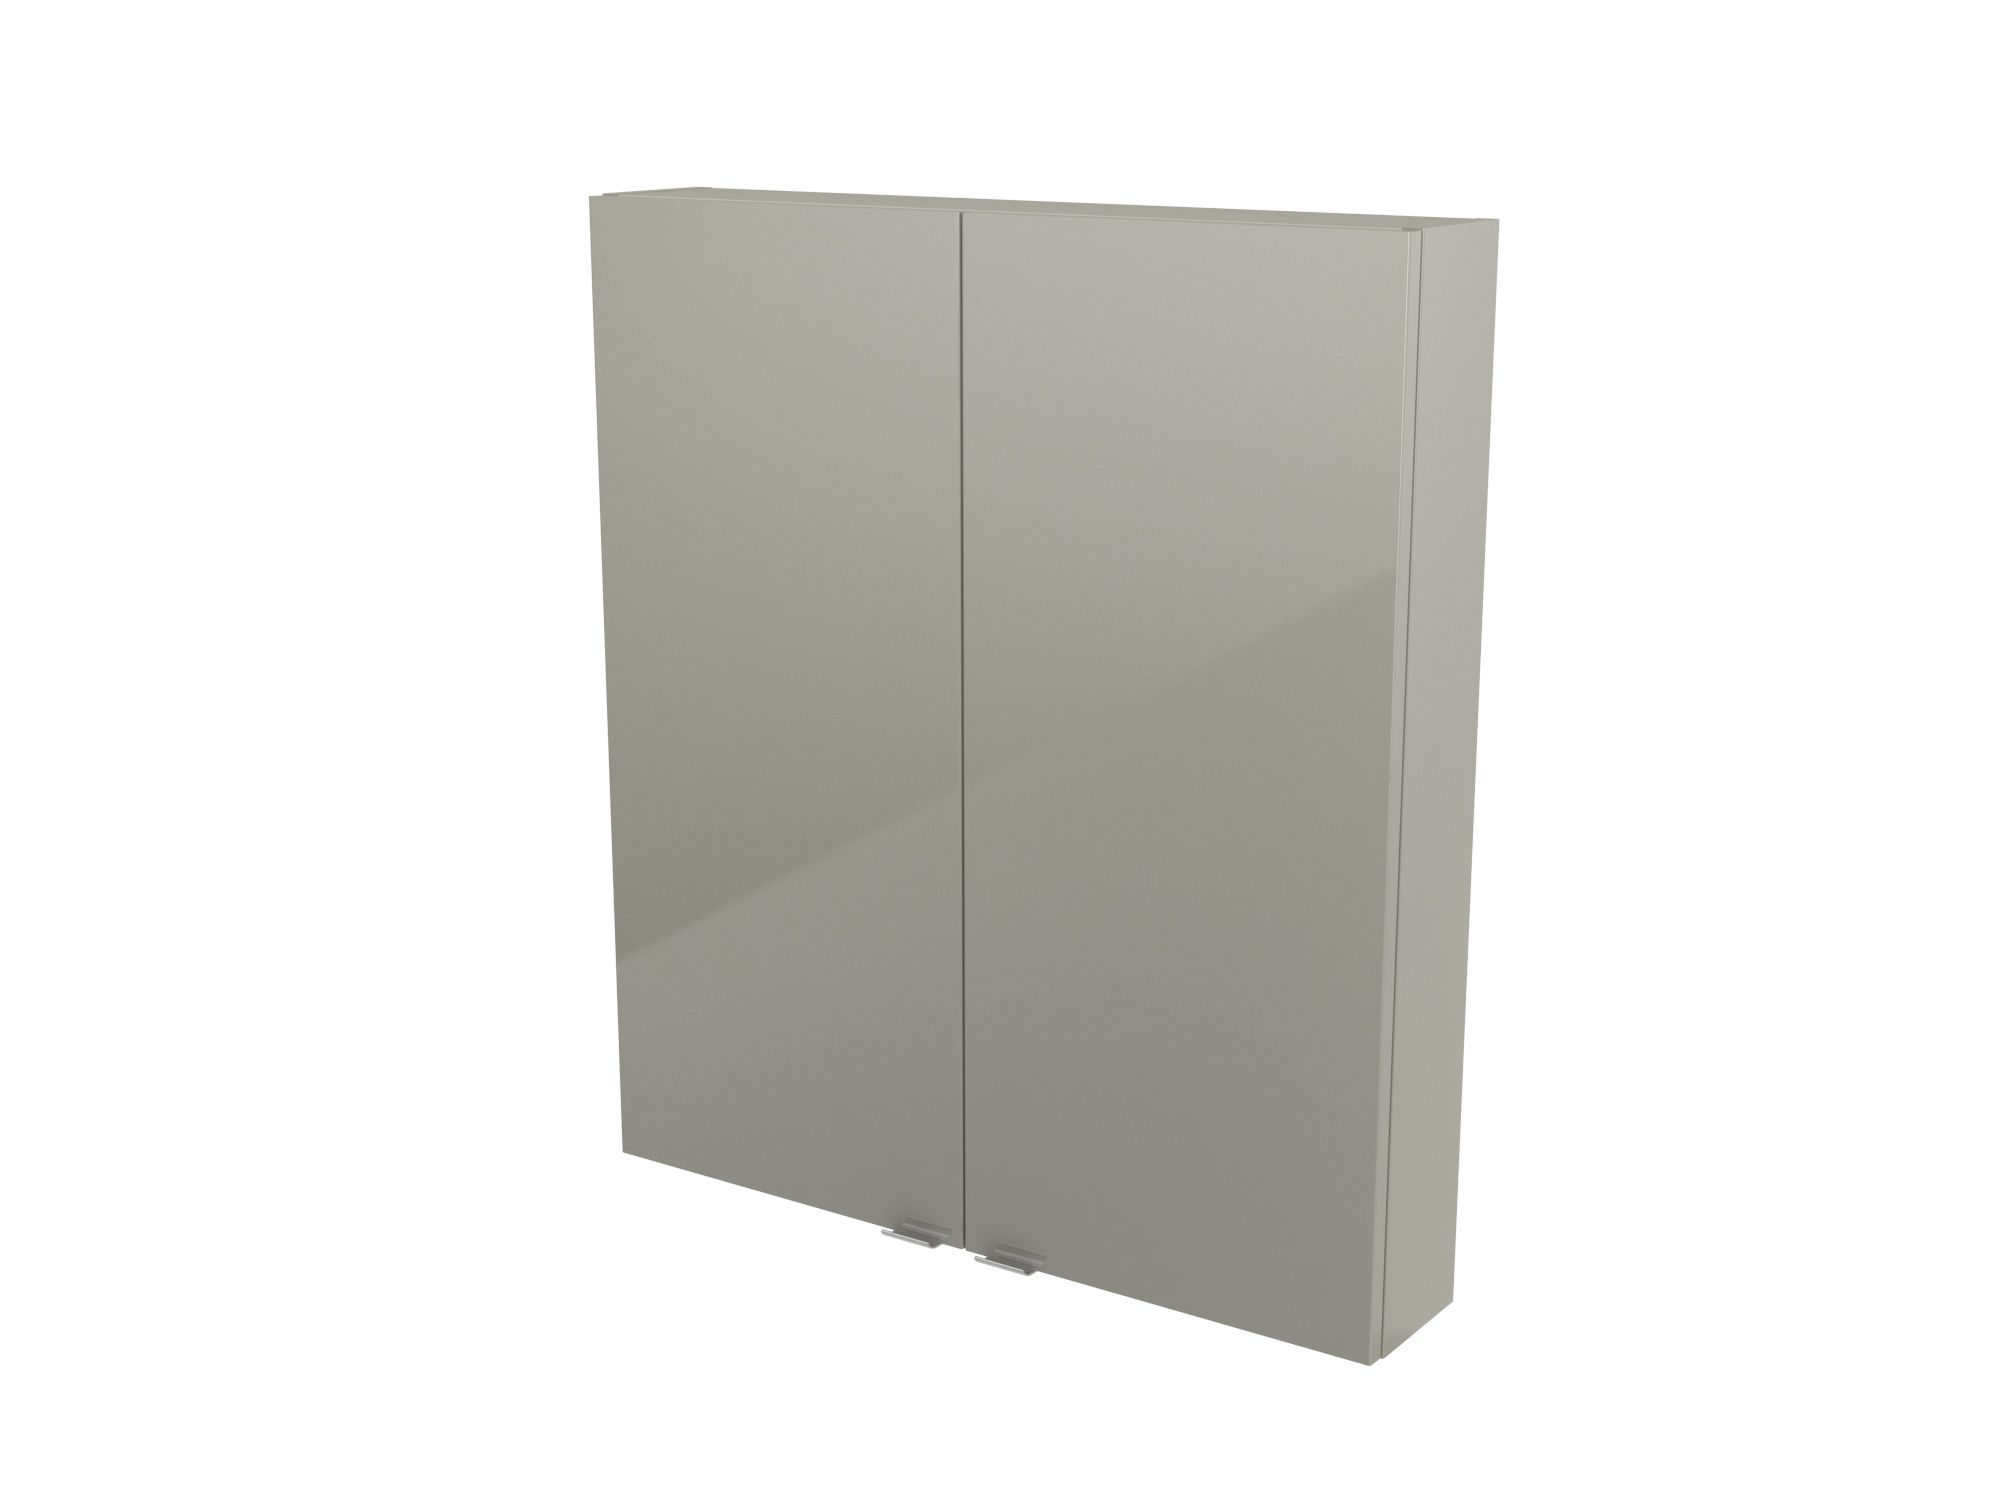 Cooke & Lewis Imandra Gloss Taupe Wall Cabinet, (w)800mm